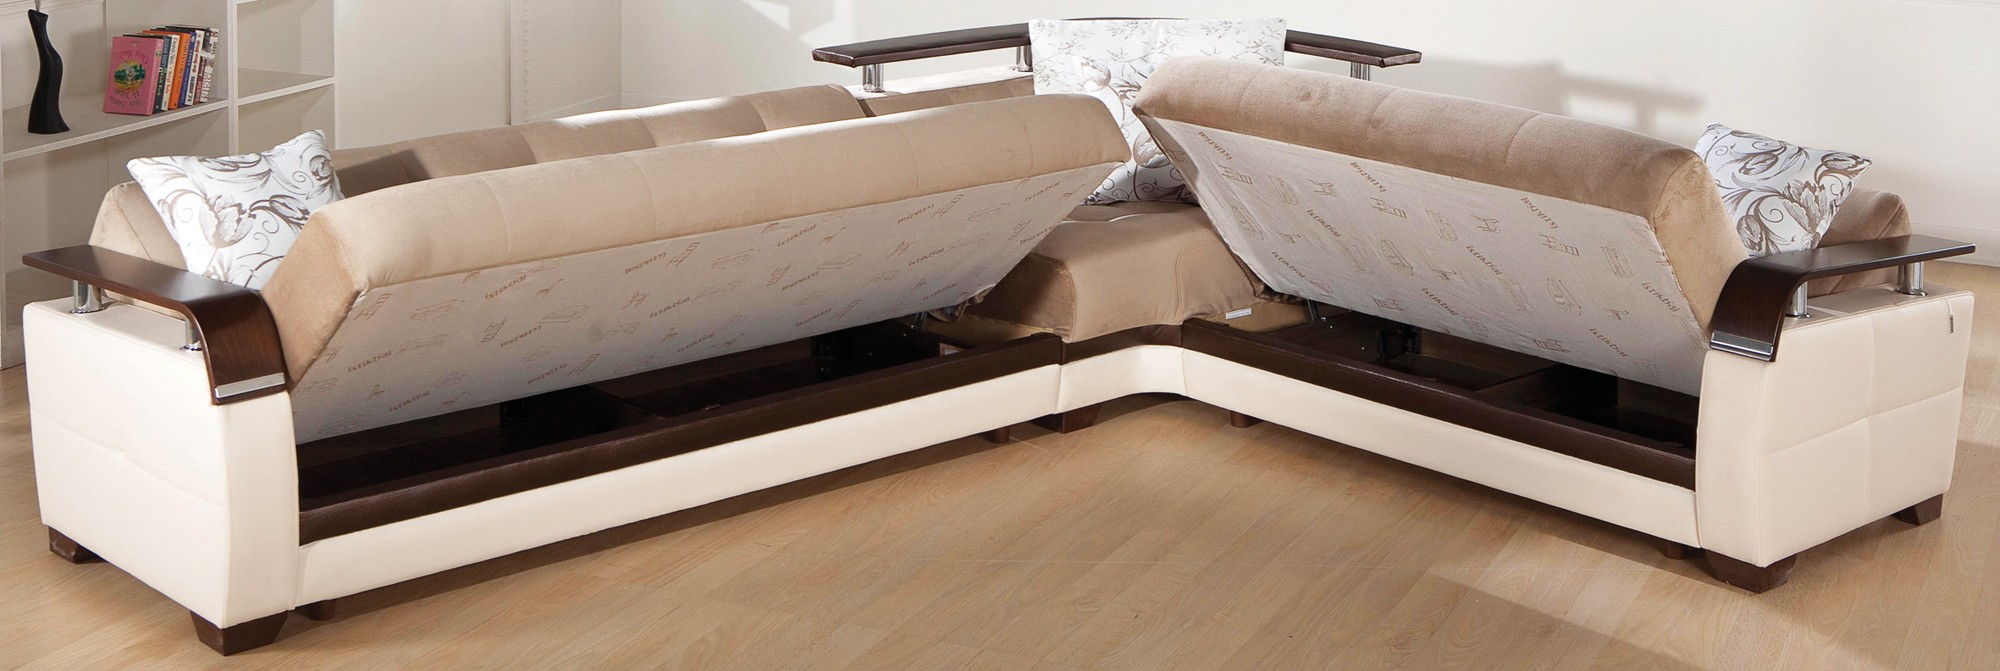 Amazing ... CADO Modern Furniture - NATURAL Sectional Sofa Sleeper ... sofa bed sectional